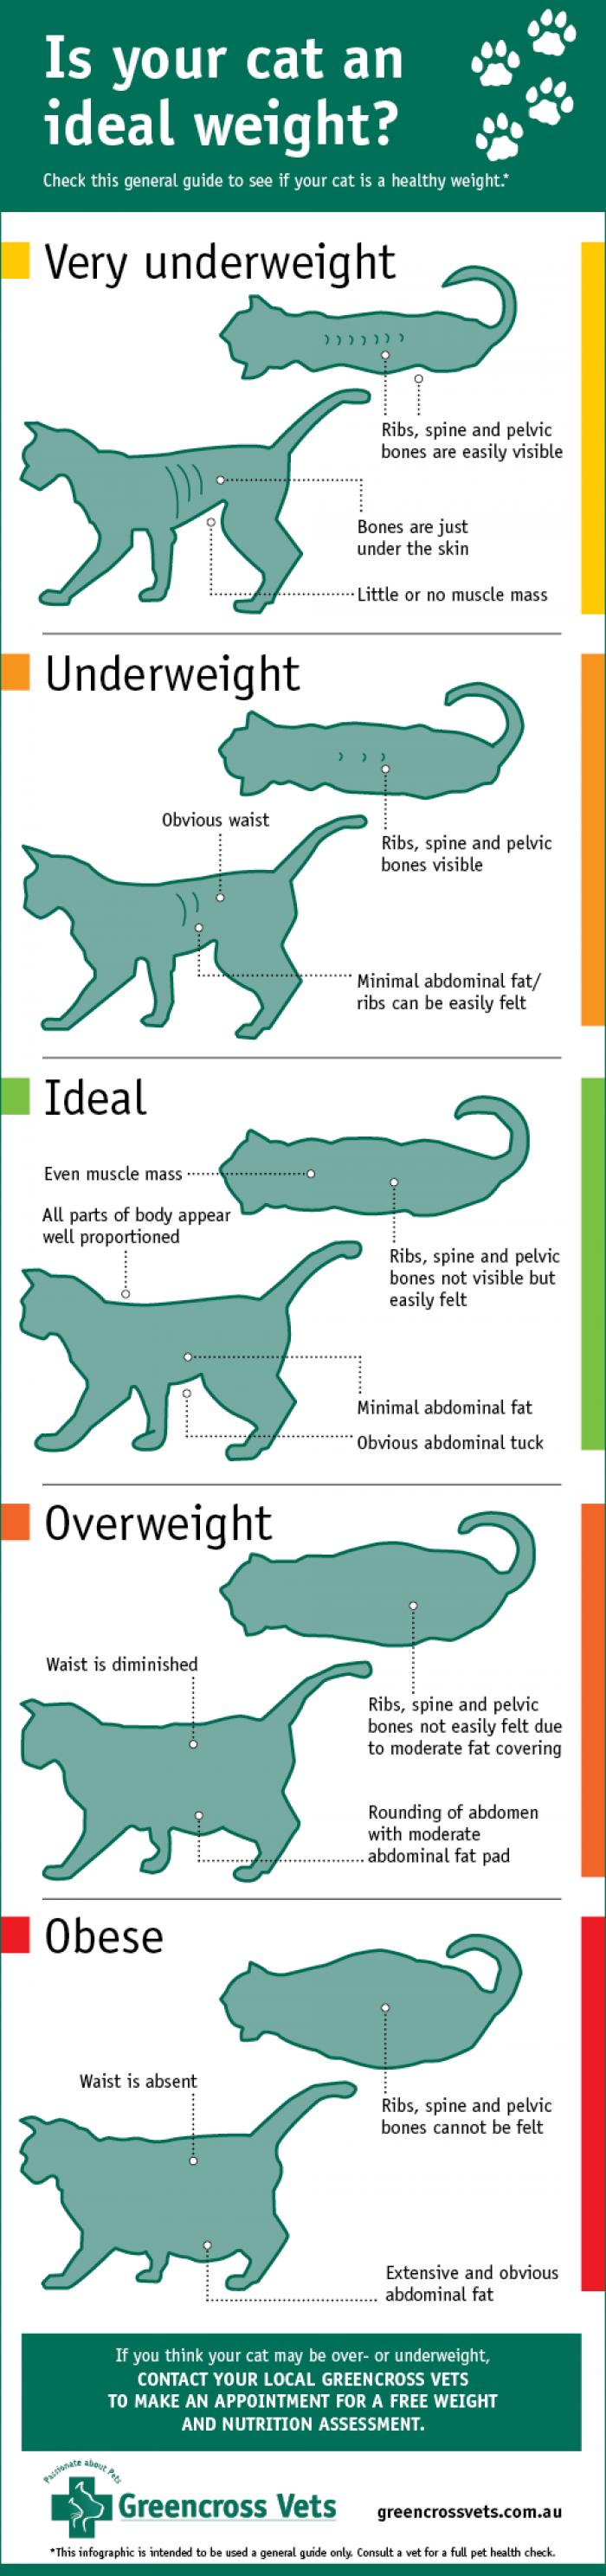 is your cat an ideal weight? check this general guide to see if your cat is a healthy weight. very underweight: ribs spine and pelvic bones are easily visible bones are just under the skin little or no muscle mass. underweight: obvious waist ribs spine and pelvic bones visible minimal abdominal fat/ribs can be easily felt. ideal: even muscle mass all parts of the body appear well proportioned ribs spine and pelvic bones not visible but easily felt minimal abdominal fat obvious abdominal tuck